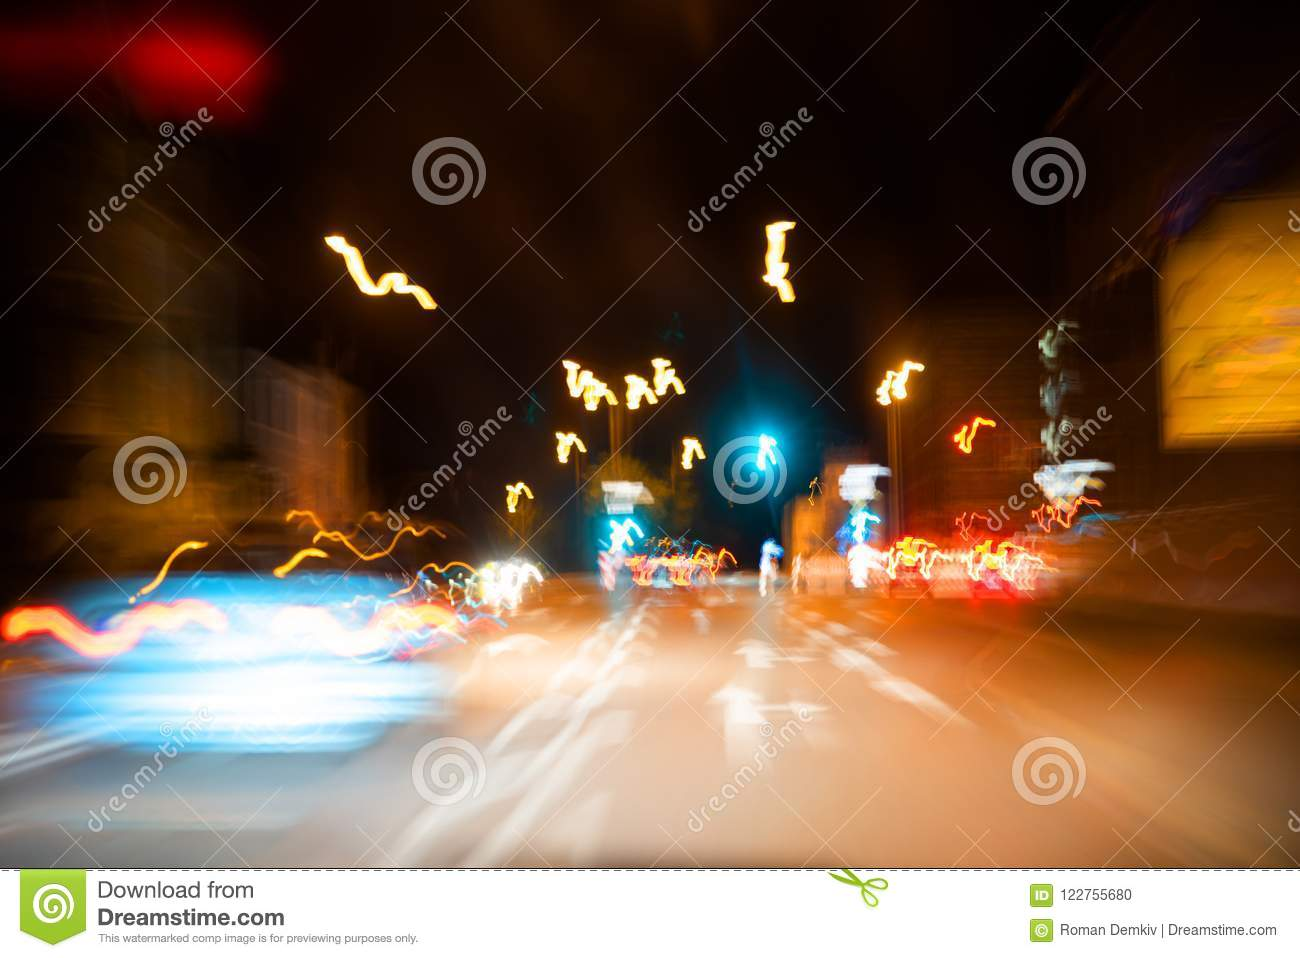 Abstract colorful background, car at speed, light traffic lights, pointers and signs, nightlife in metropolis